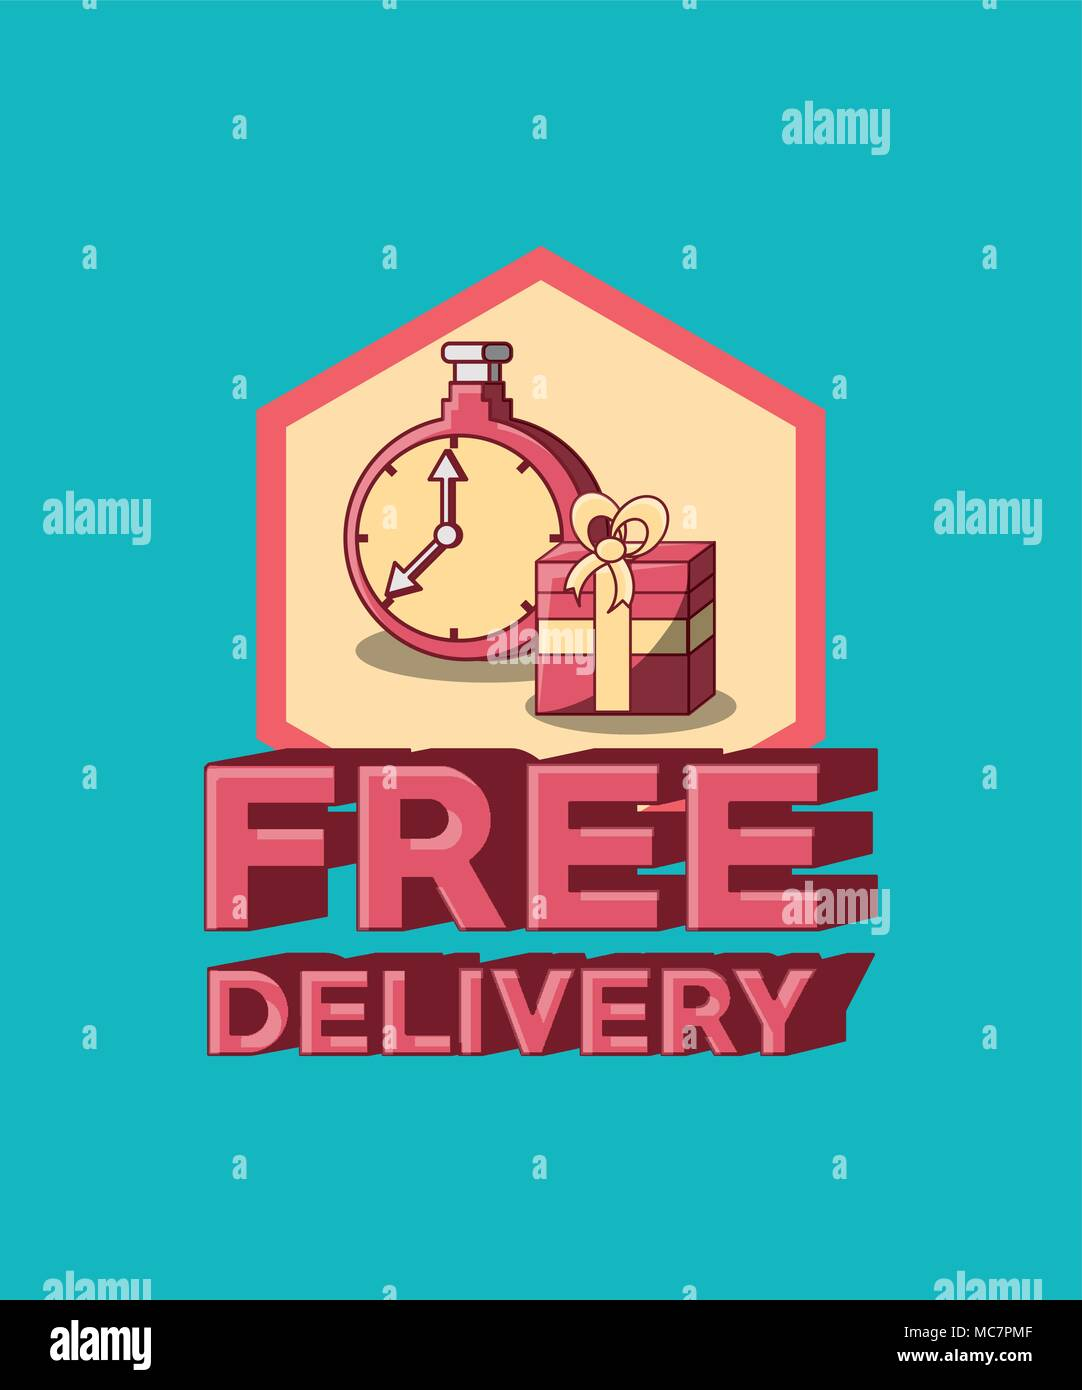 Free delivery design with chronometer and gift box over blue background, vector illustration - Stock Image